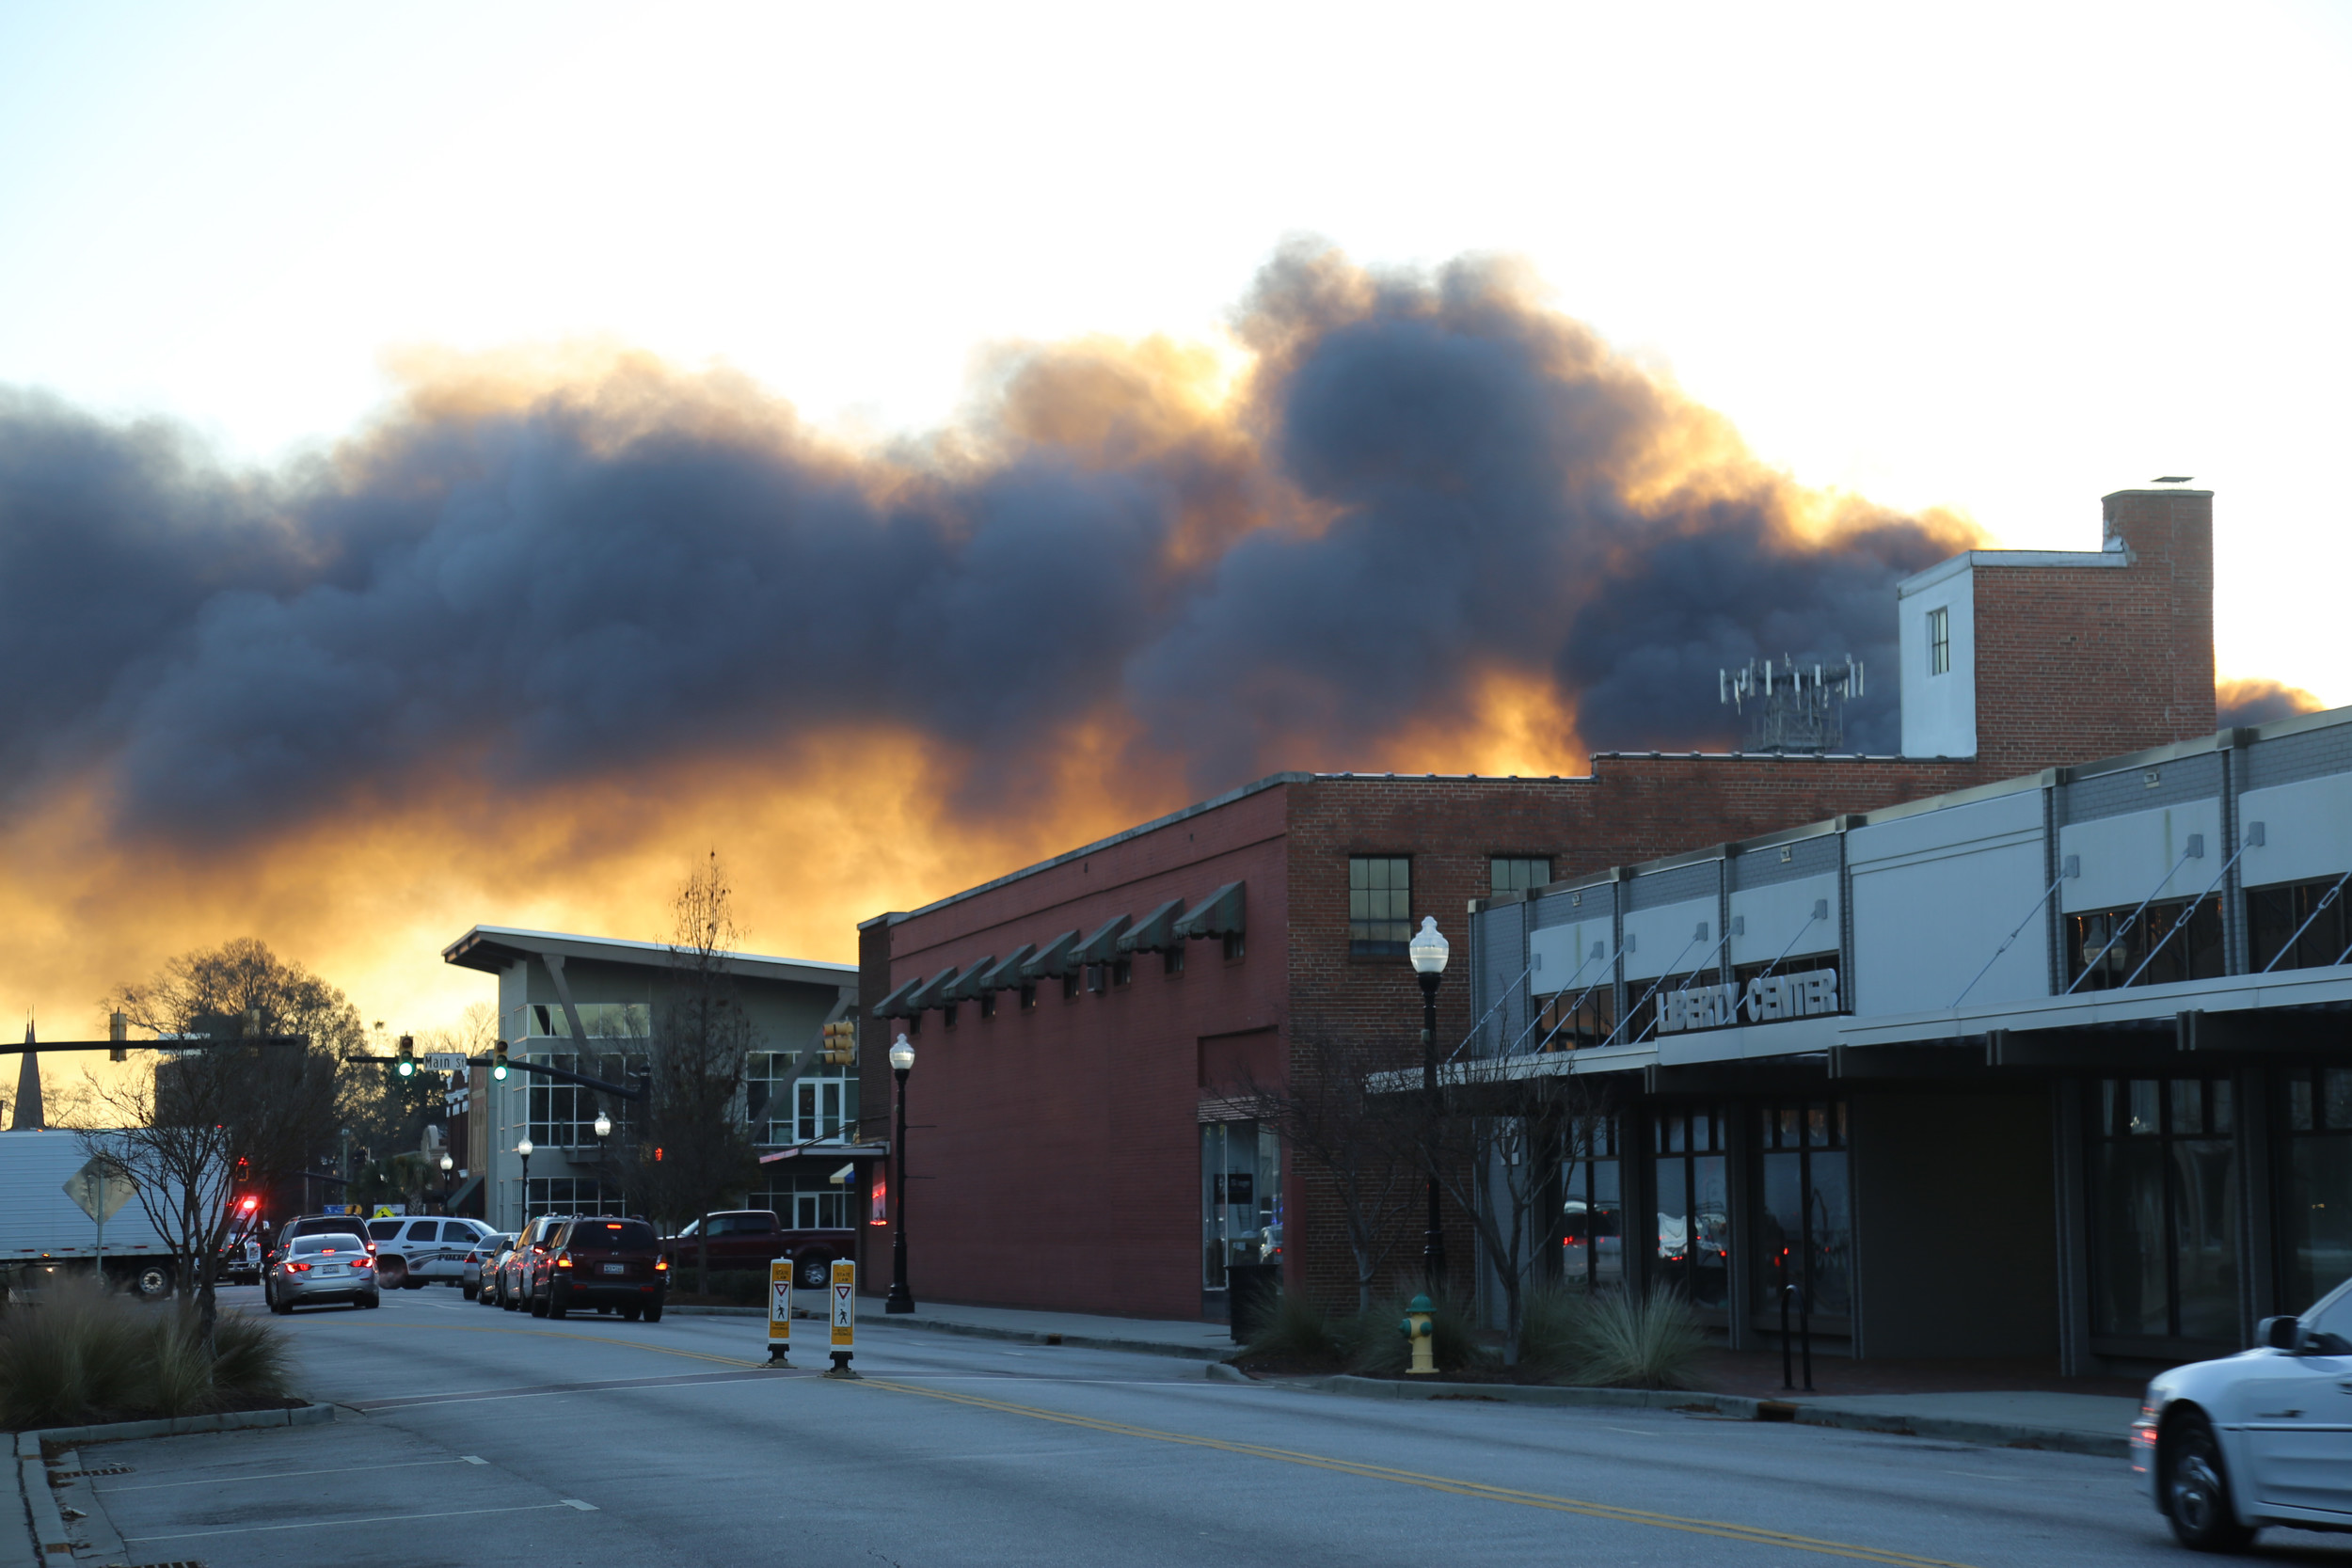 Smoke was visible from downtown Sumter as the blaze continued to rage Friday.